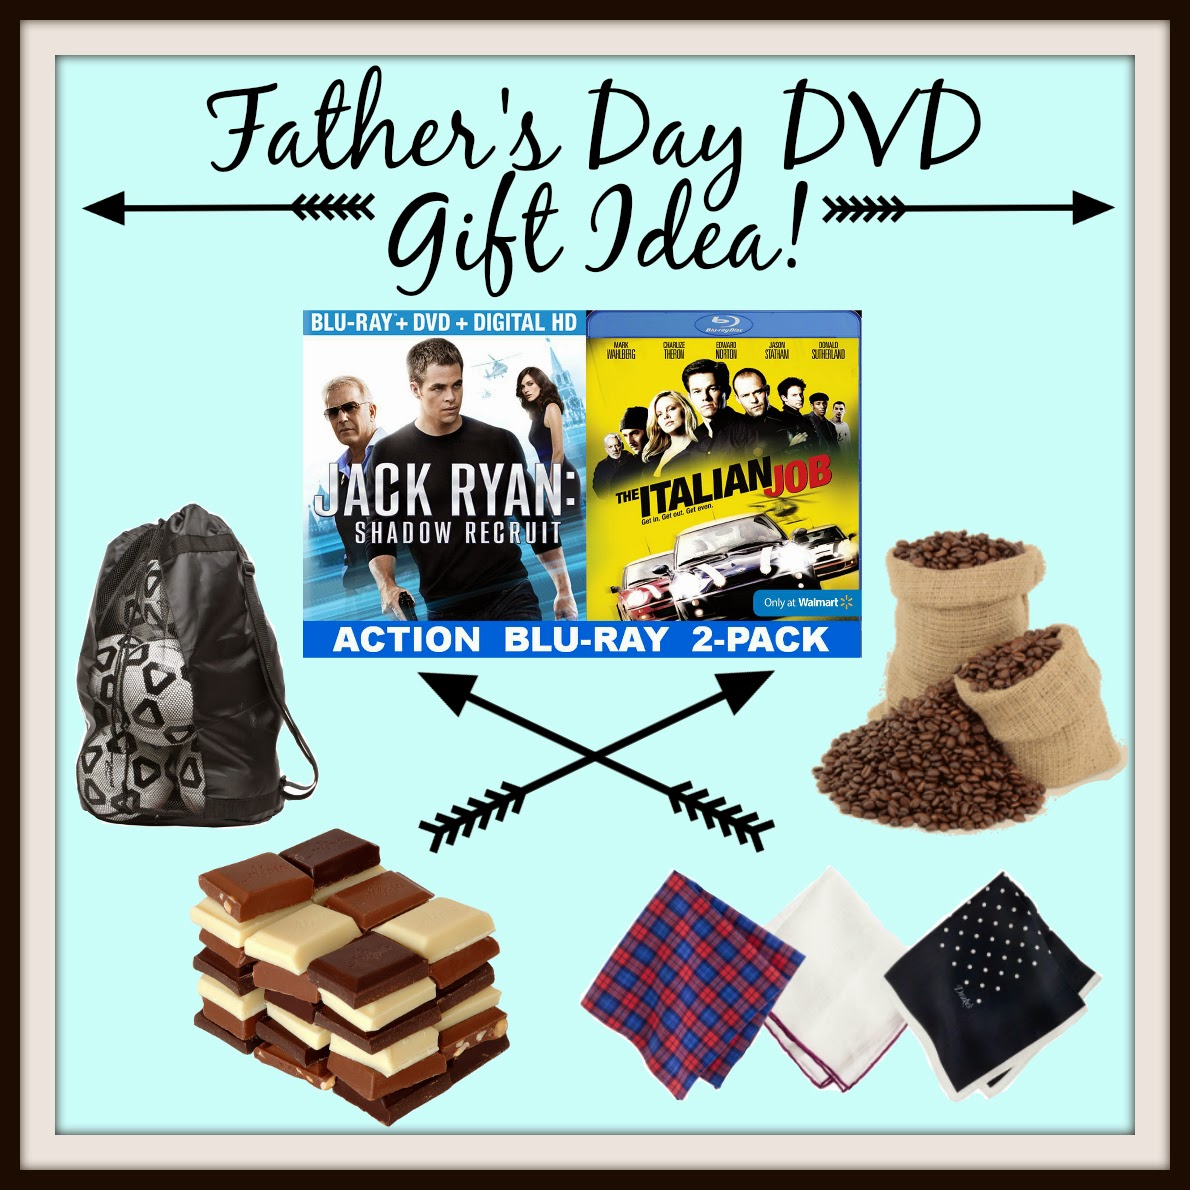 Father's Day DVD Gift Idea on Diane's Vintage Zest! #shop #JackRyanBluRay #cbias